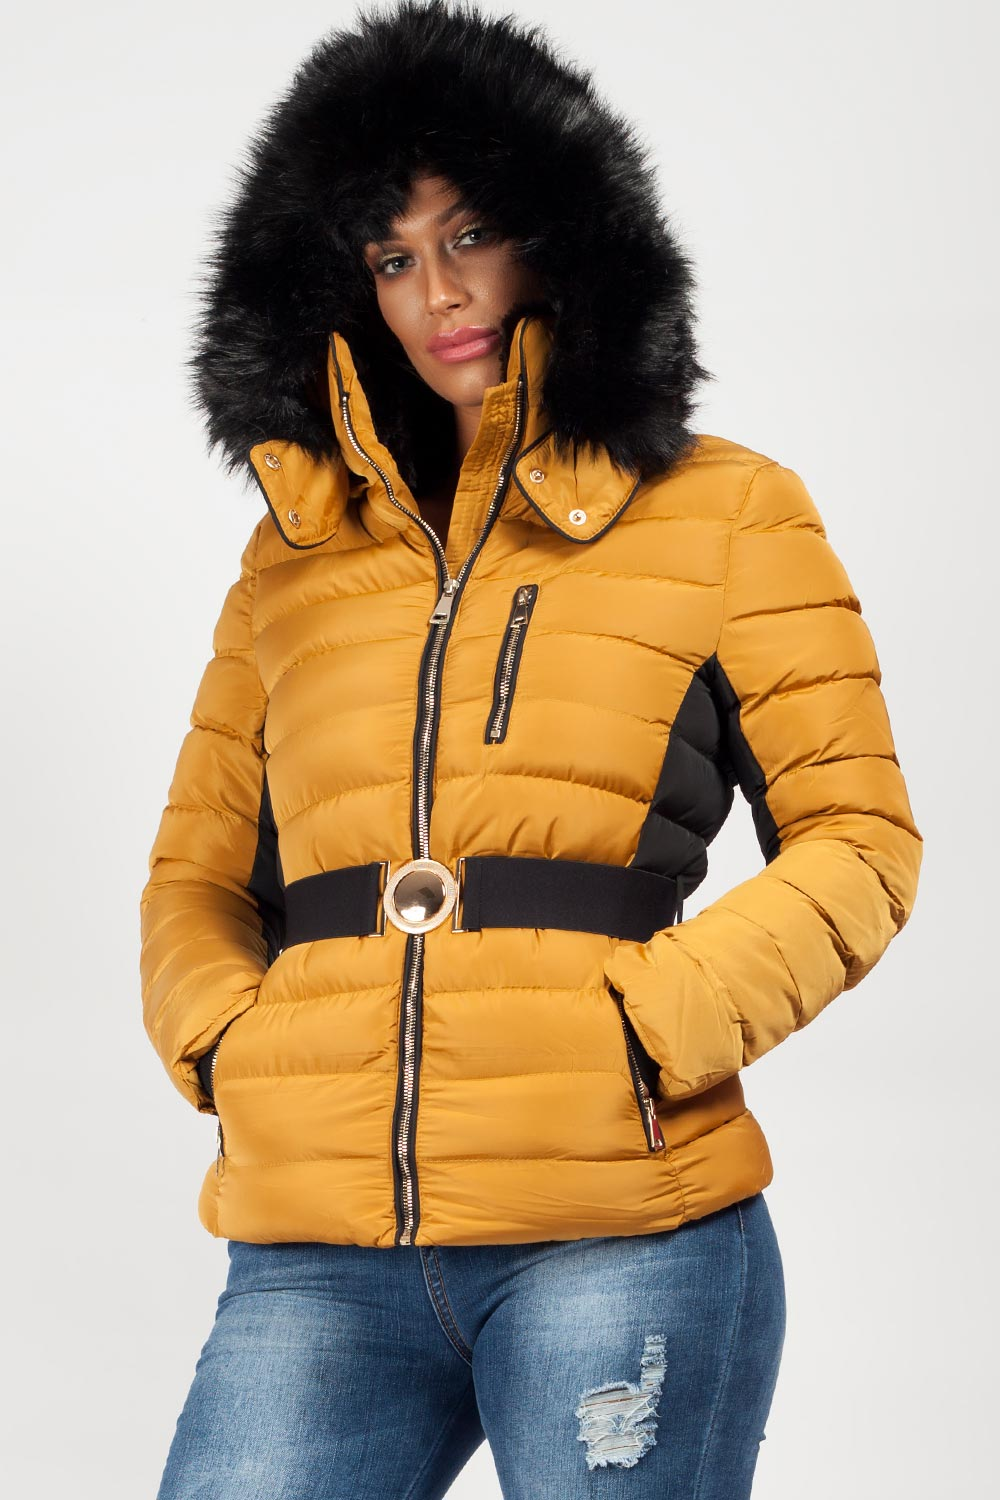 Women S Winter Coats Jackets Latest Styles Aw 2018 Page